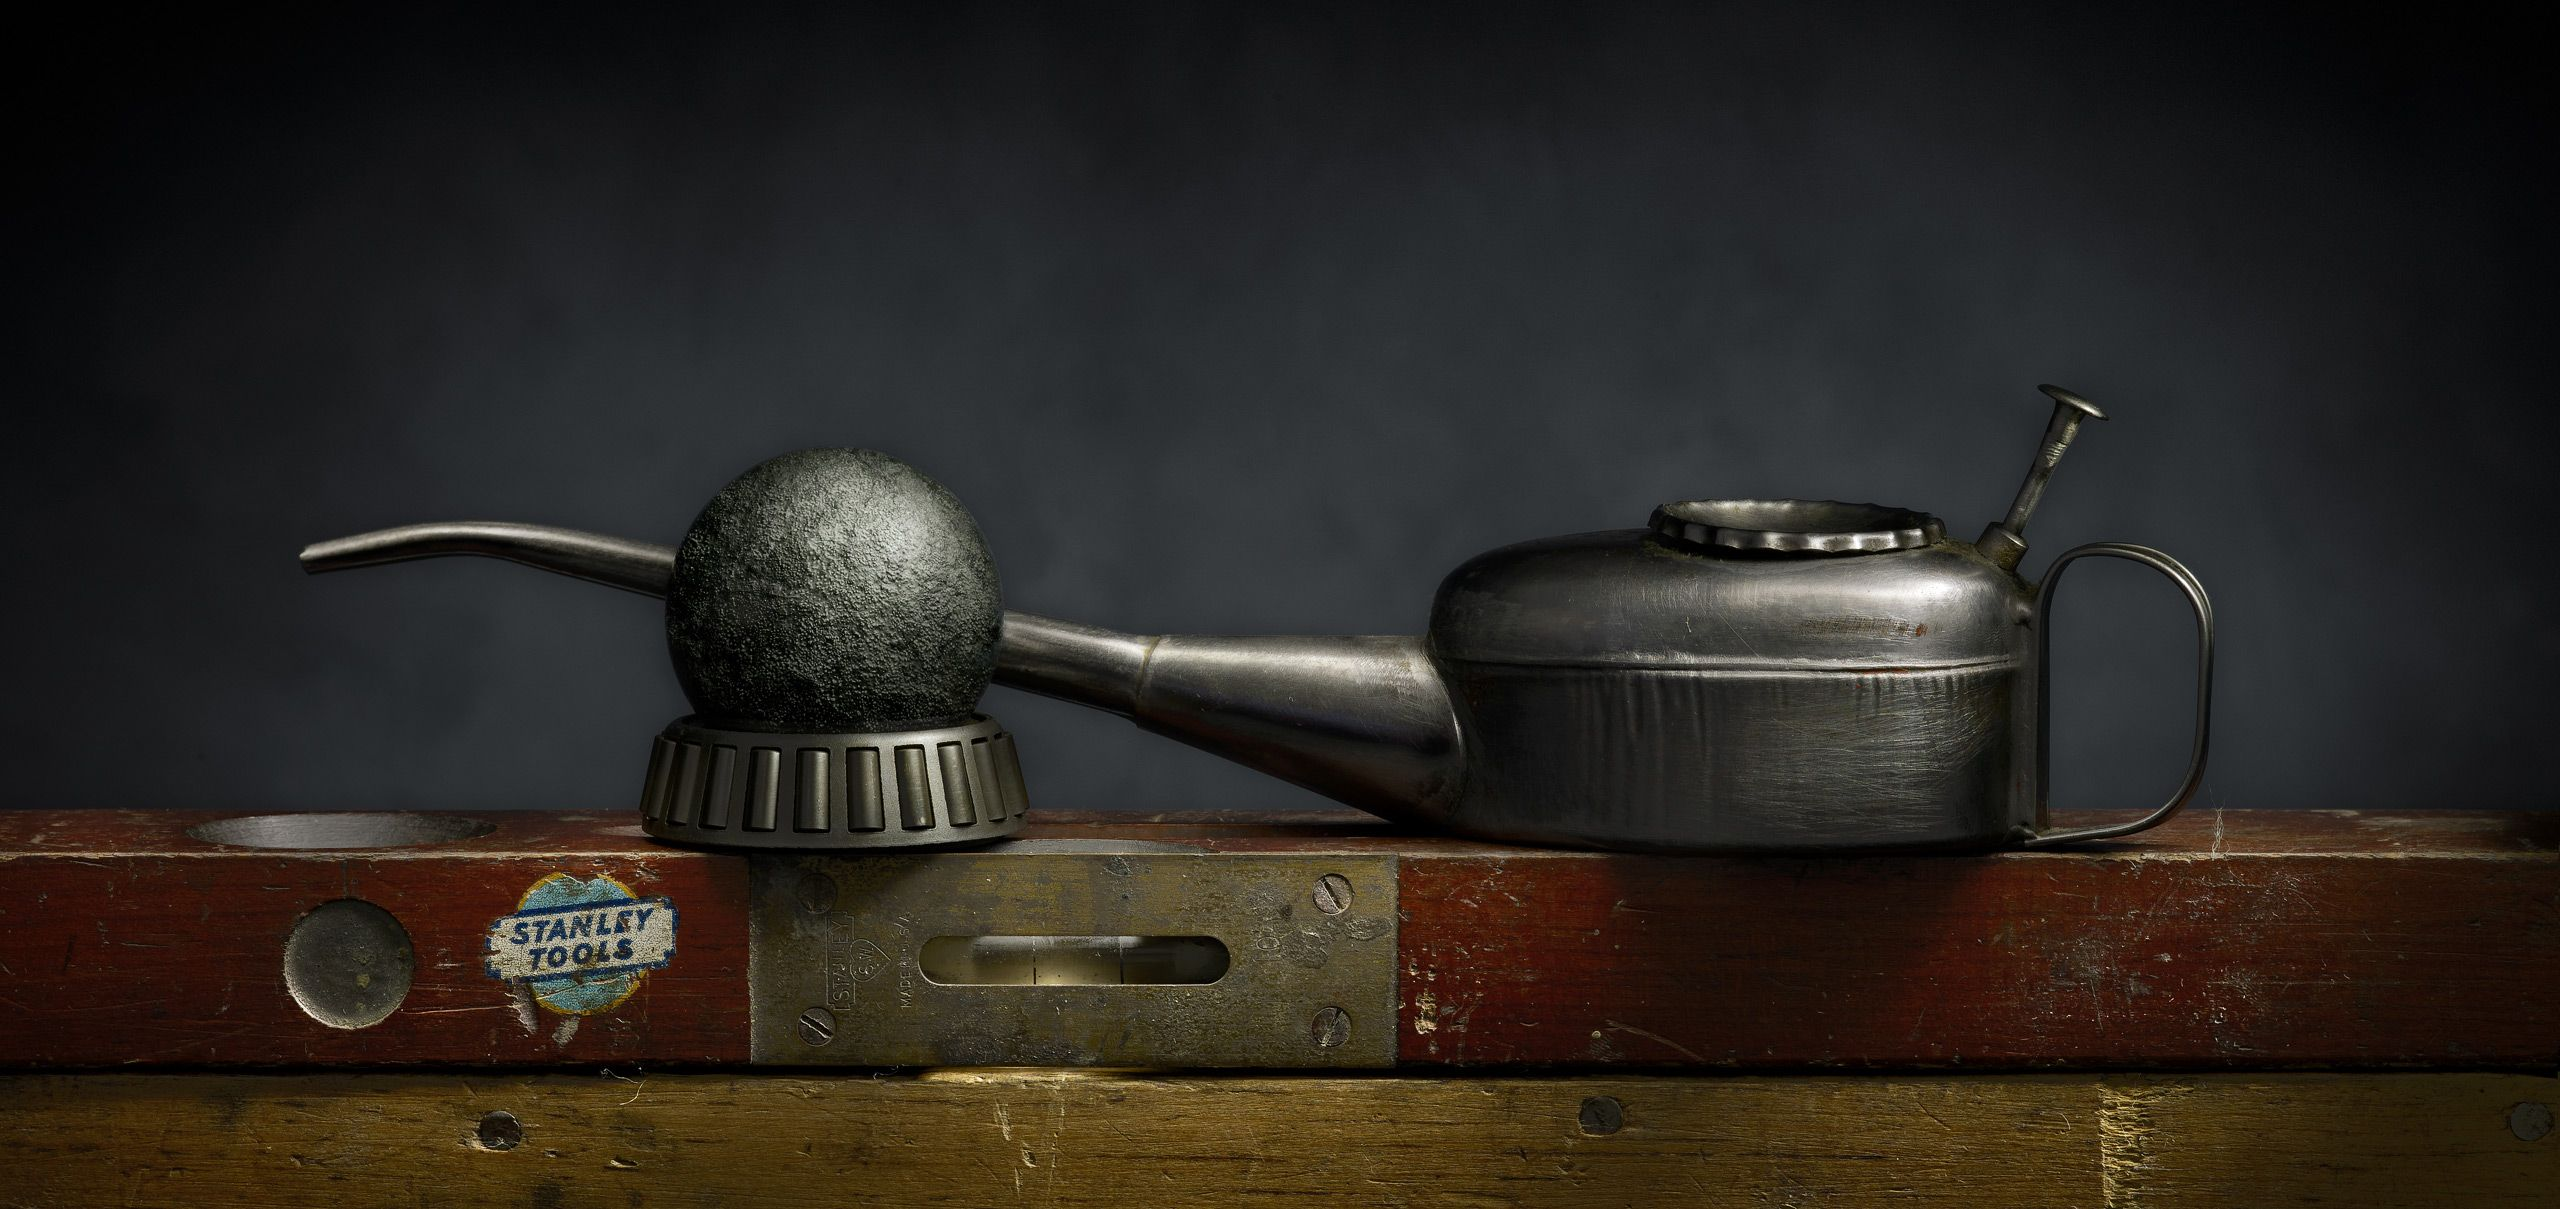 Still_Life_with_Oil_Can_and_Steel_Ball_lb.jpg